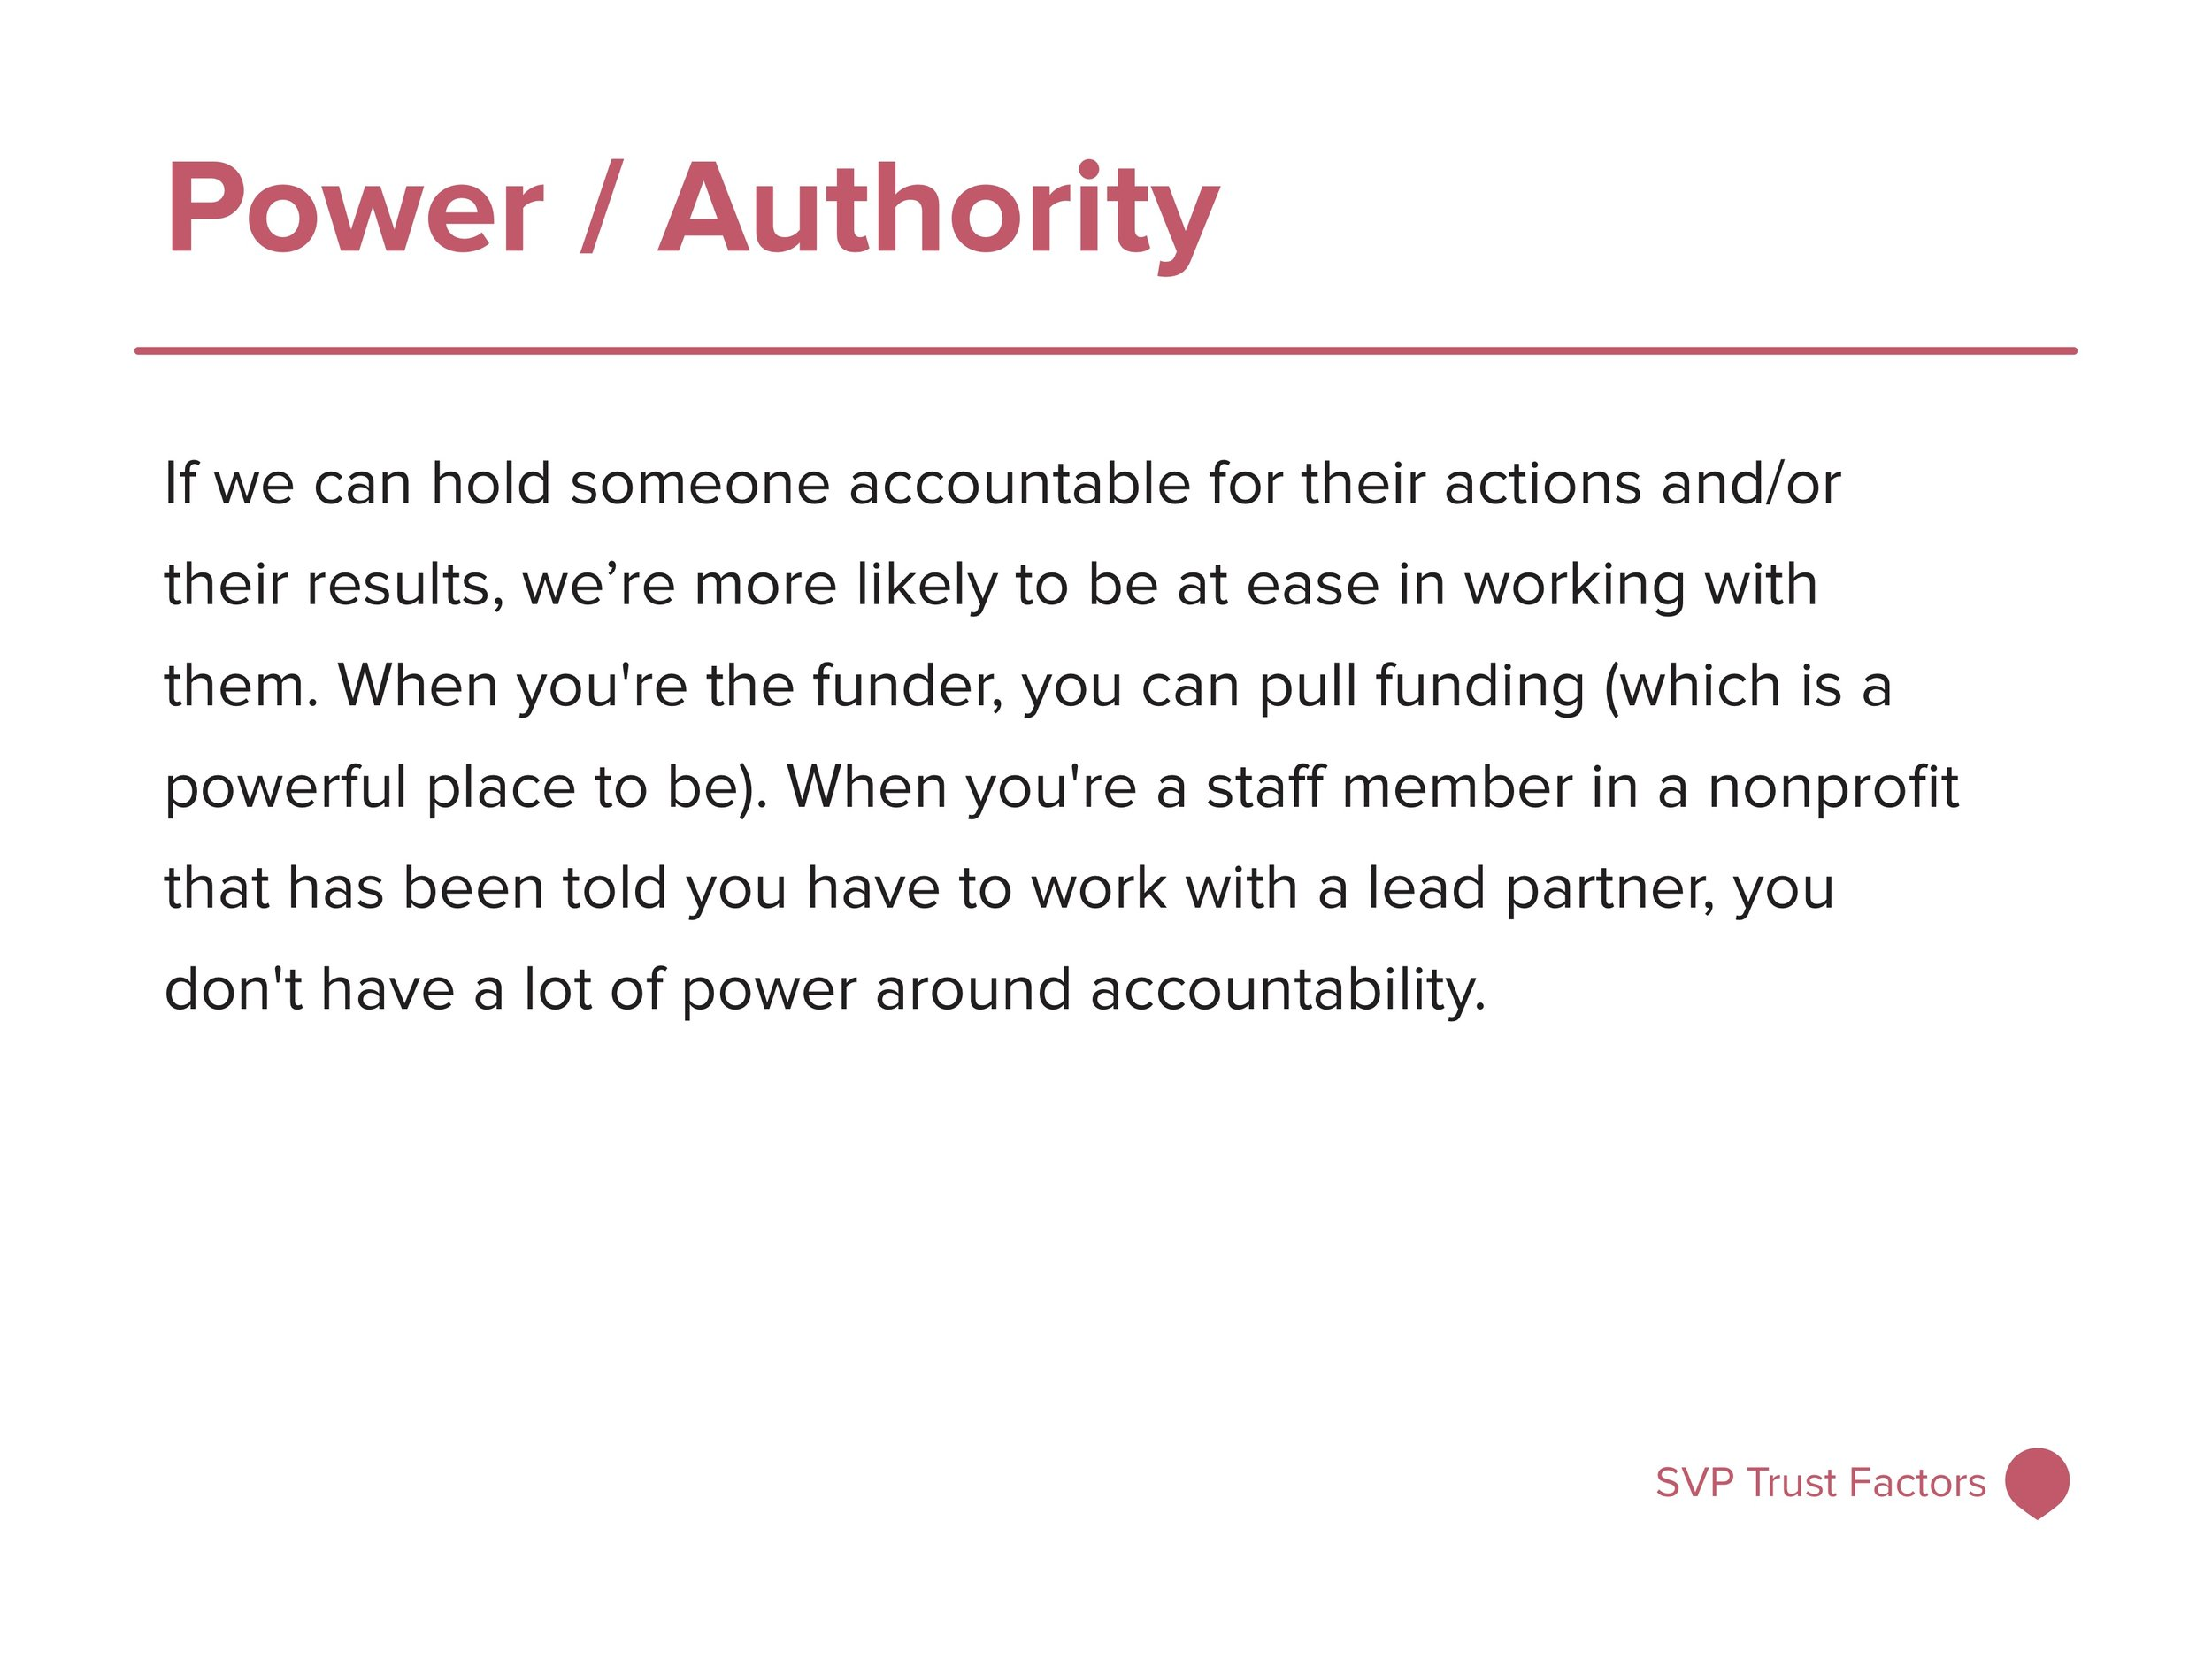 Mod3_InPerson_Poster_Trust-Factors-Power.jpg